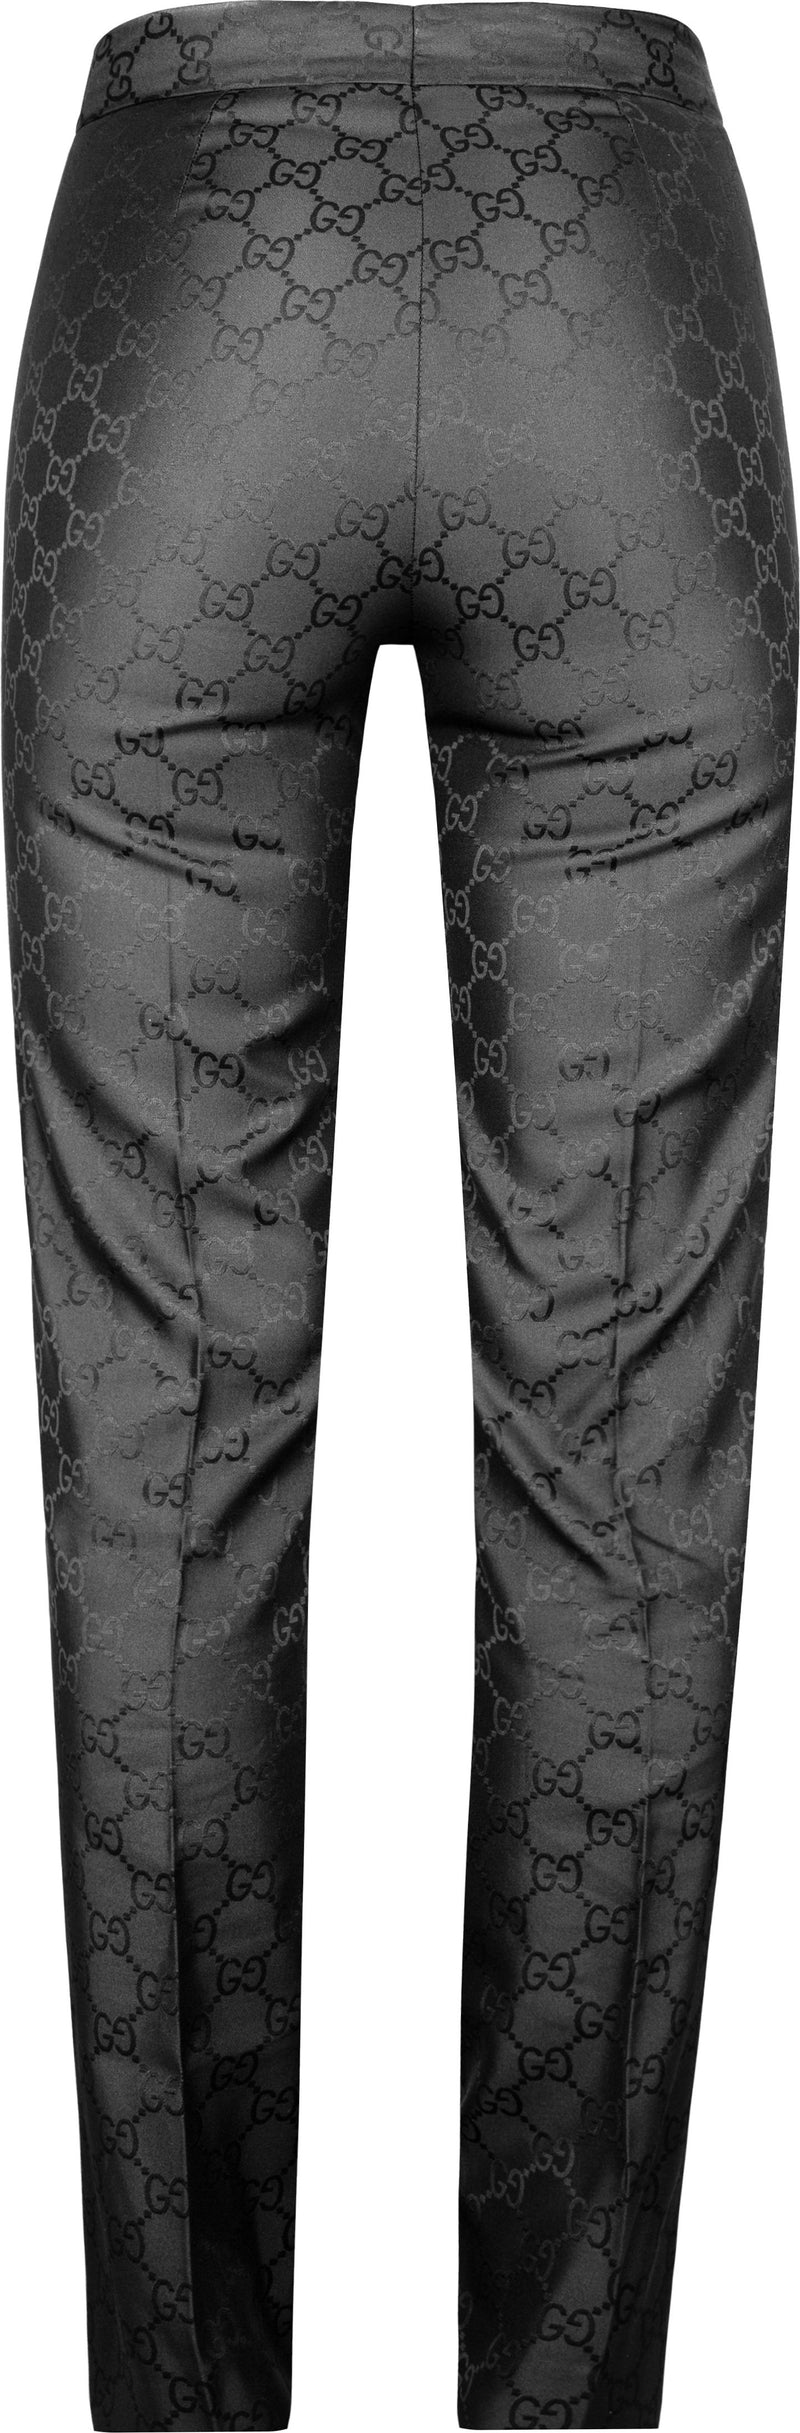 Gucci Monogram Tapered Trouser Pants